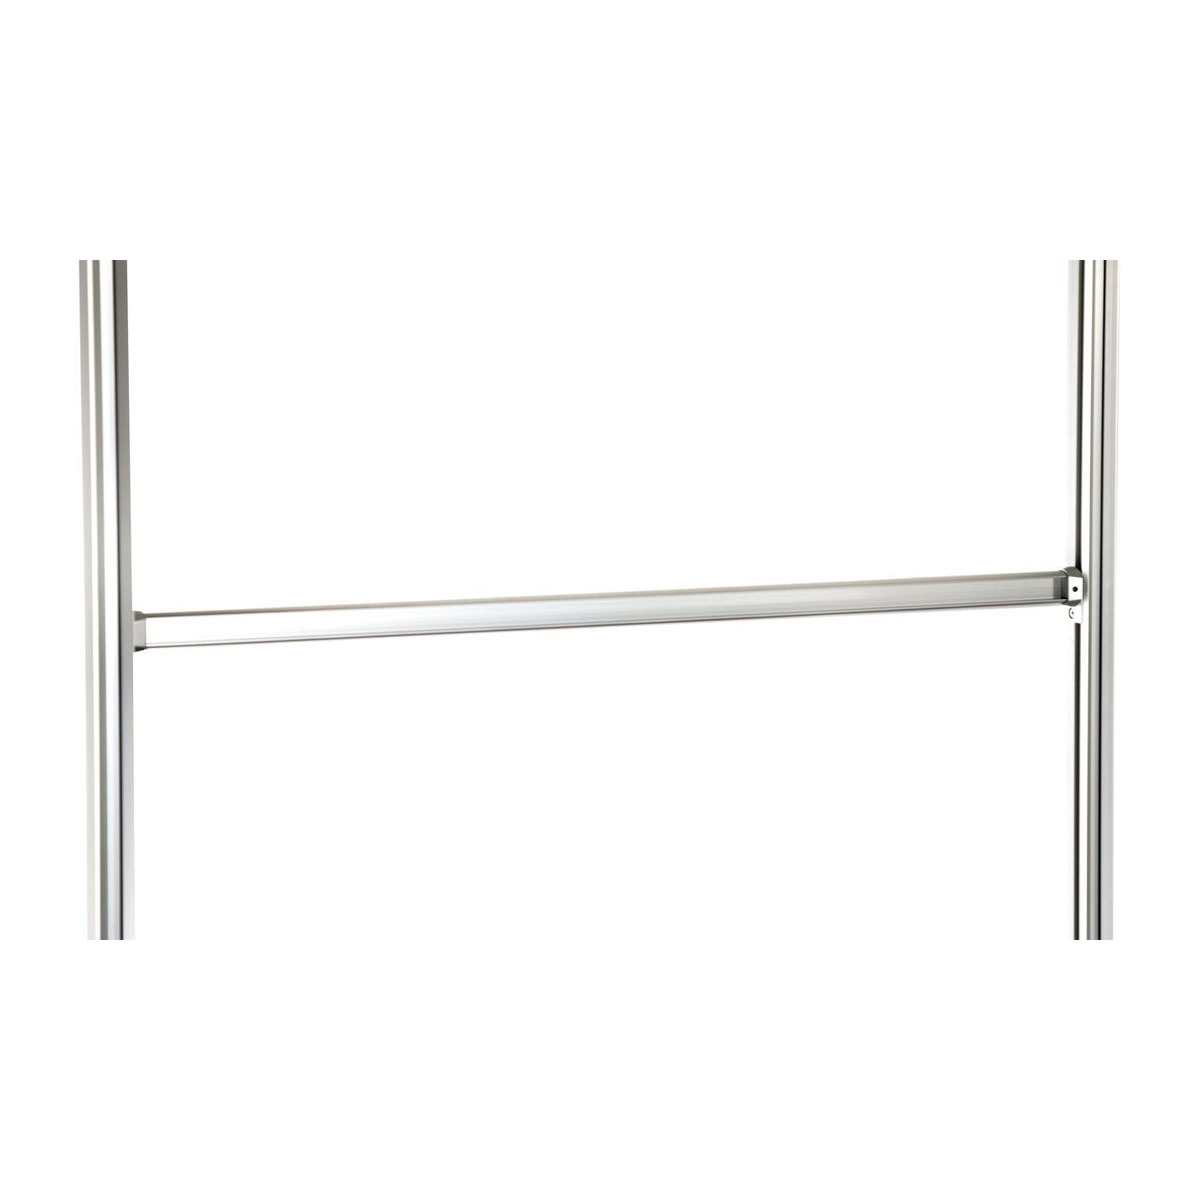 Relax Hanger Bar Assembly 1220mm